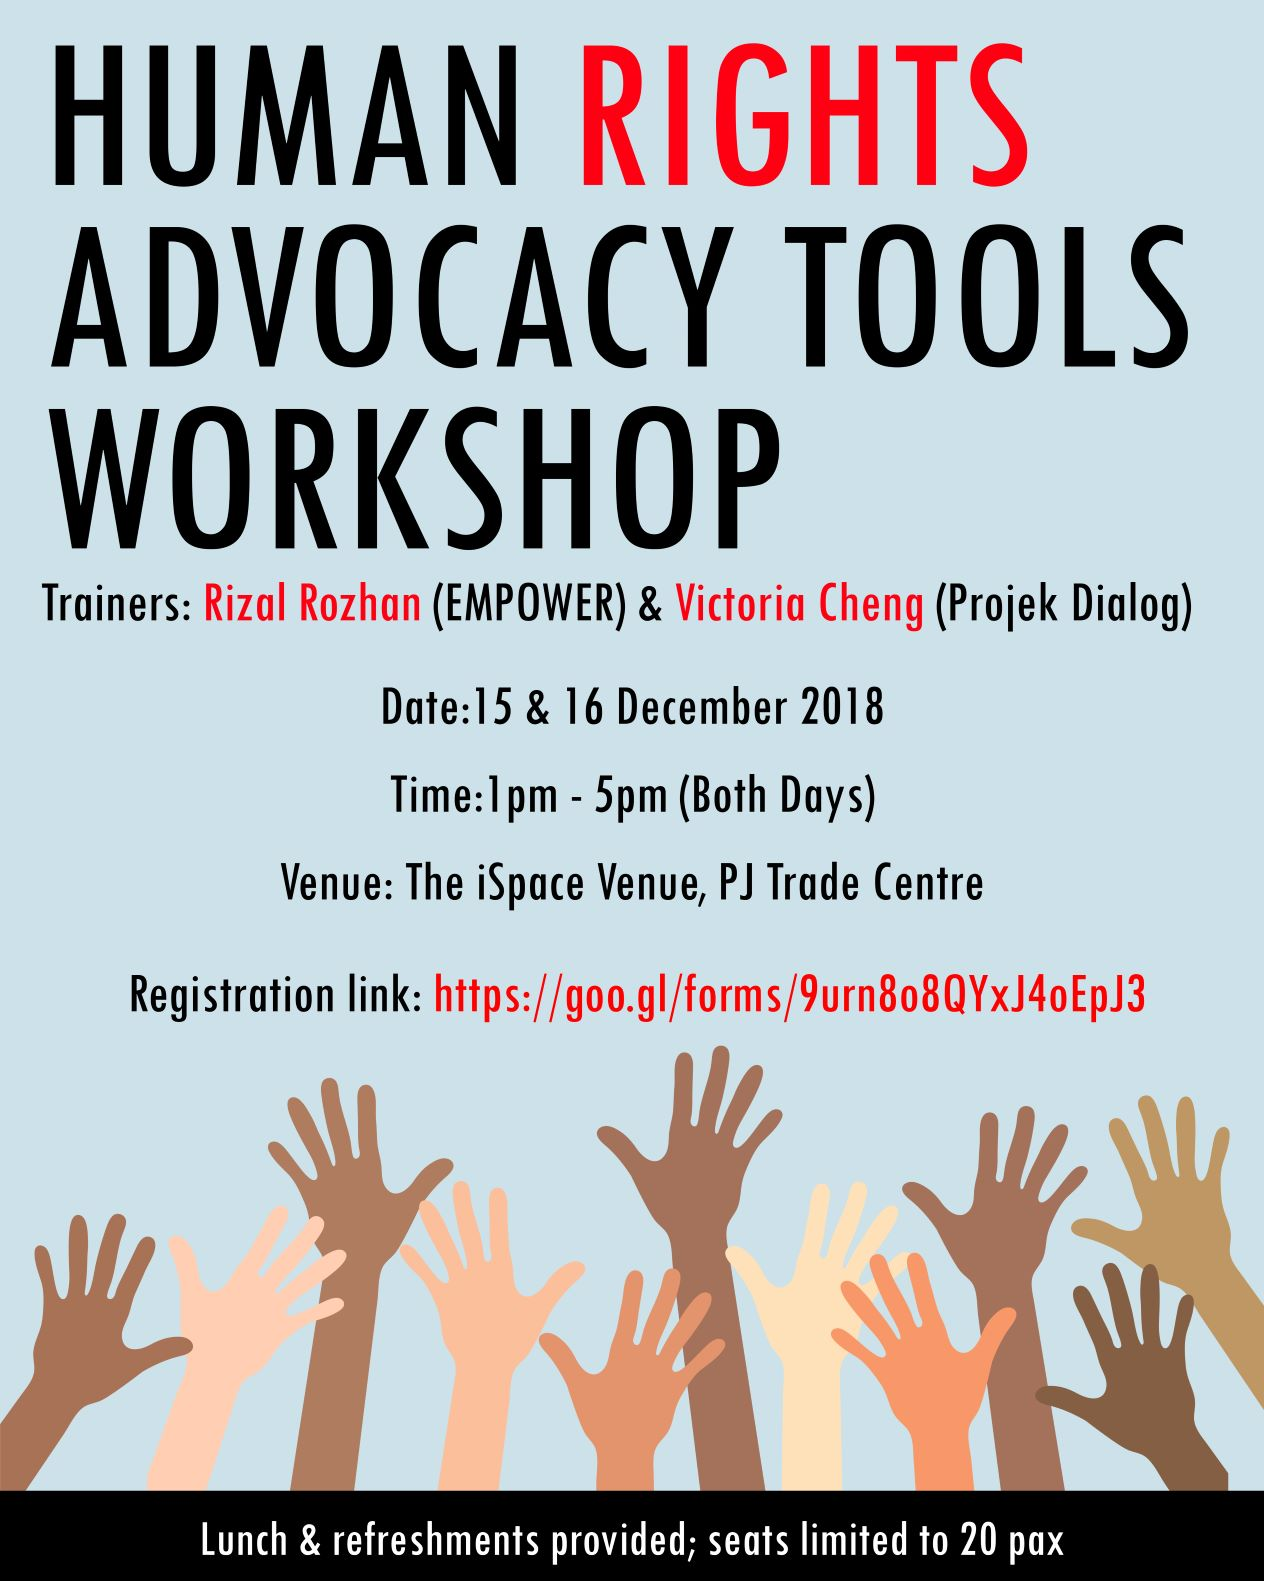 Human Rights Advocacy Tools Workshop